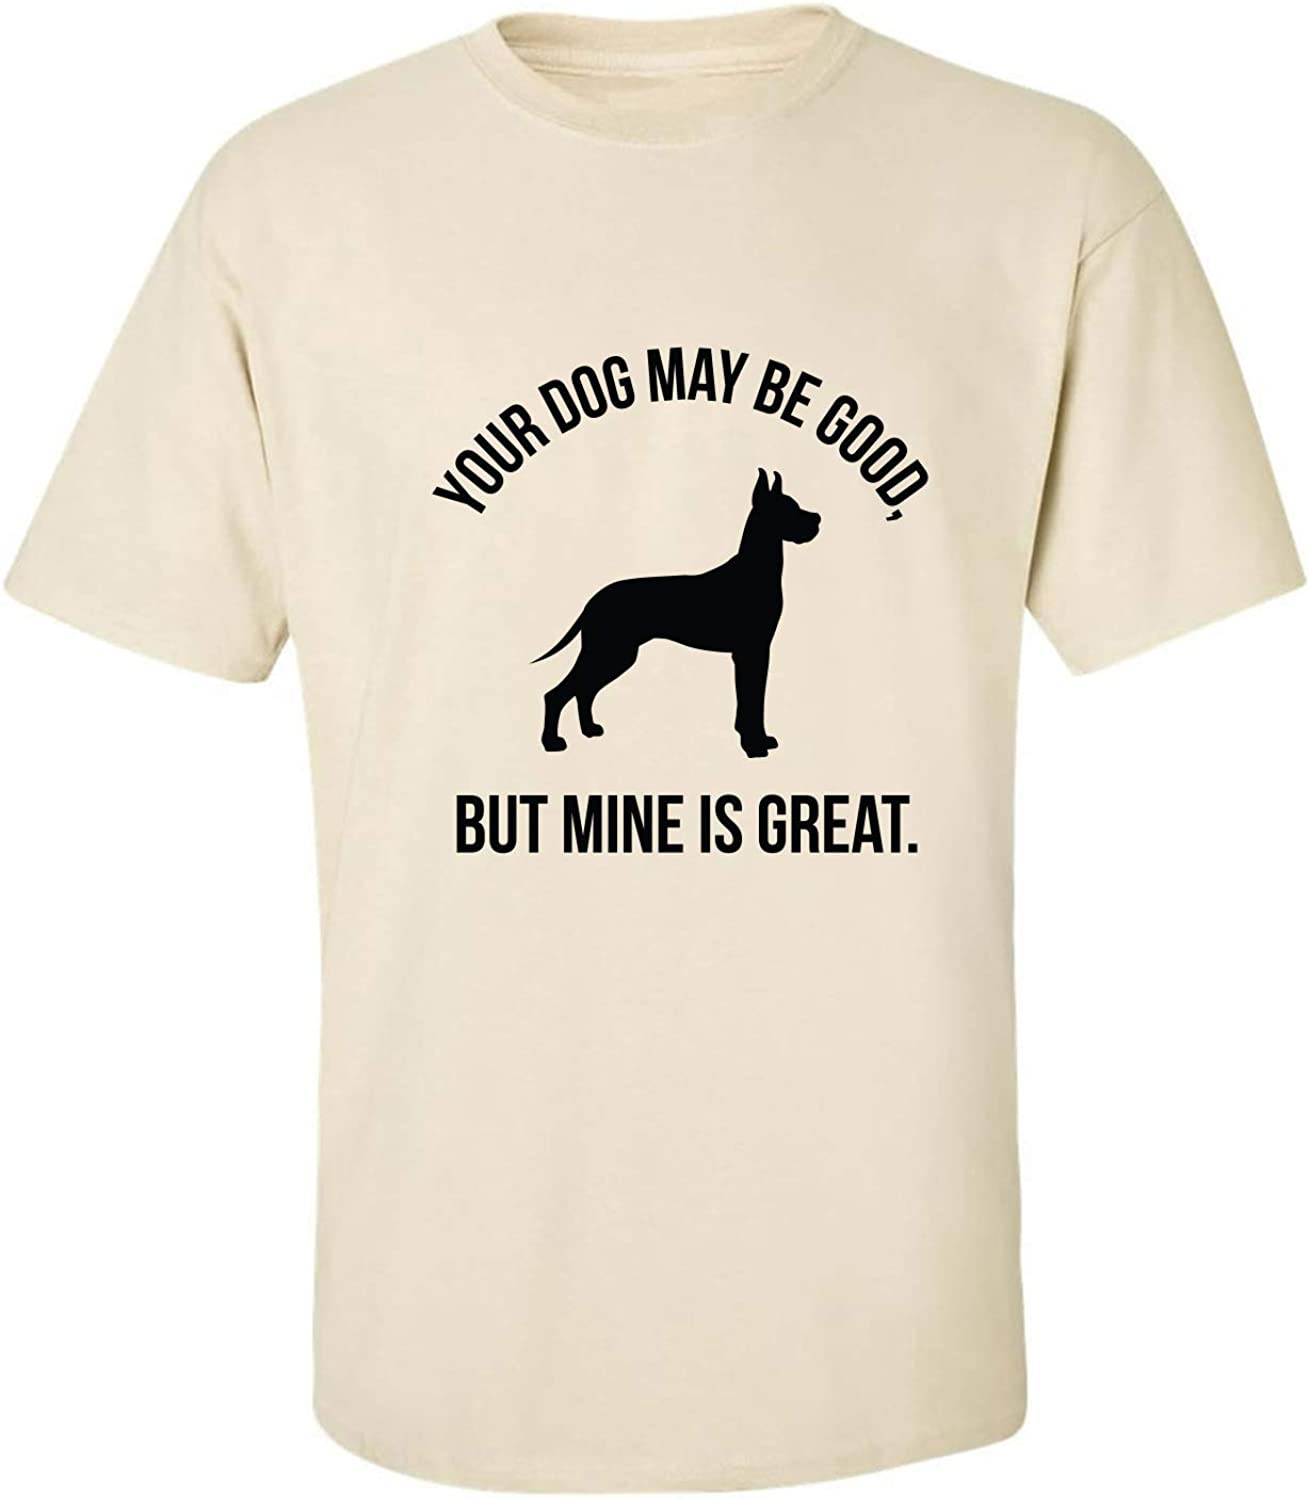 Your Dog May Be Good Adult T-Shirt in Sand - XXXX-Large